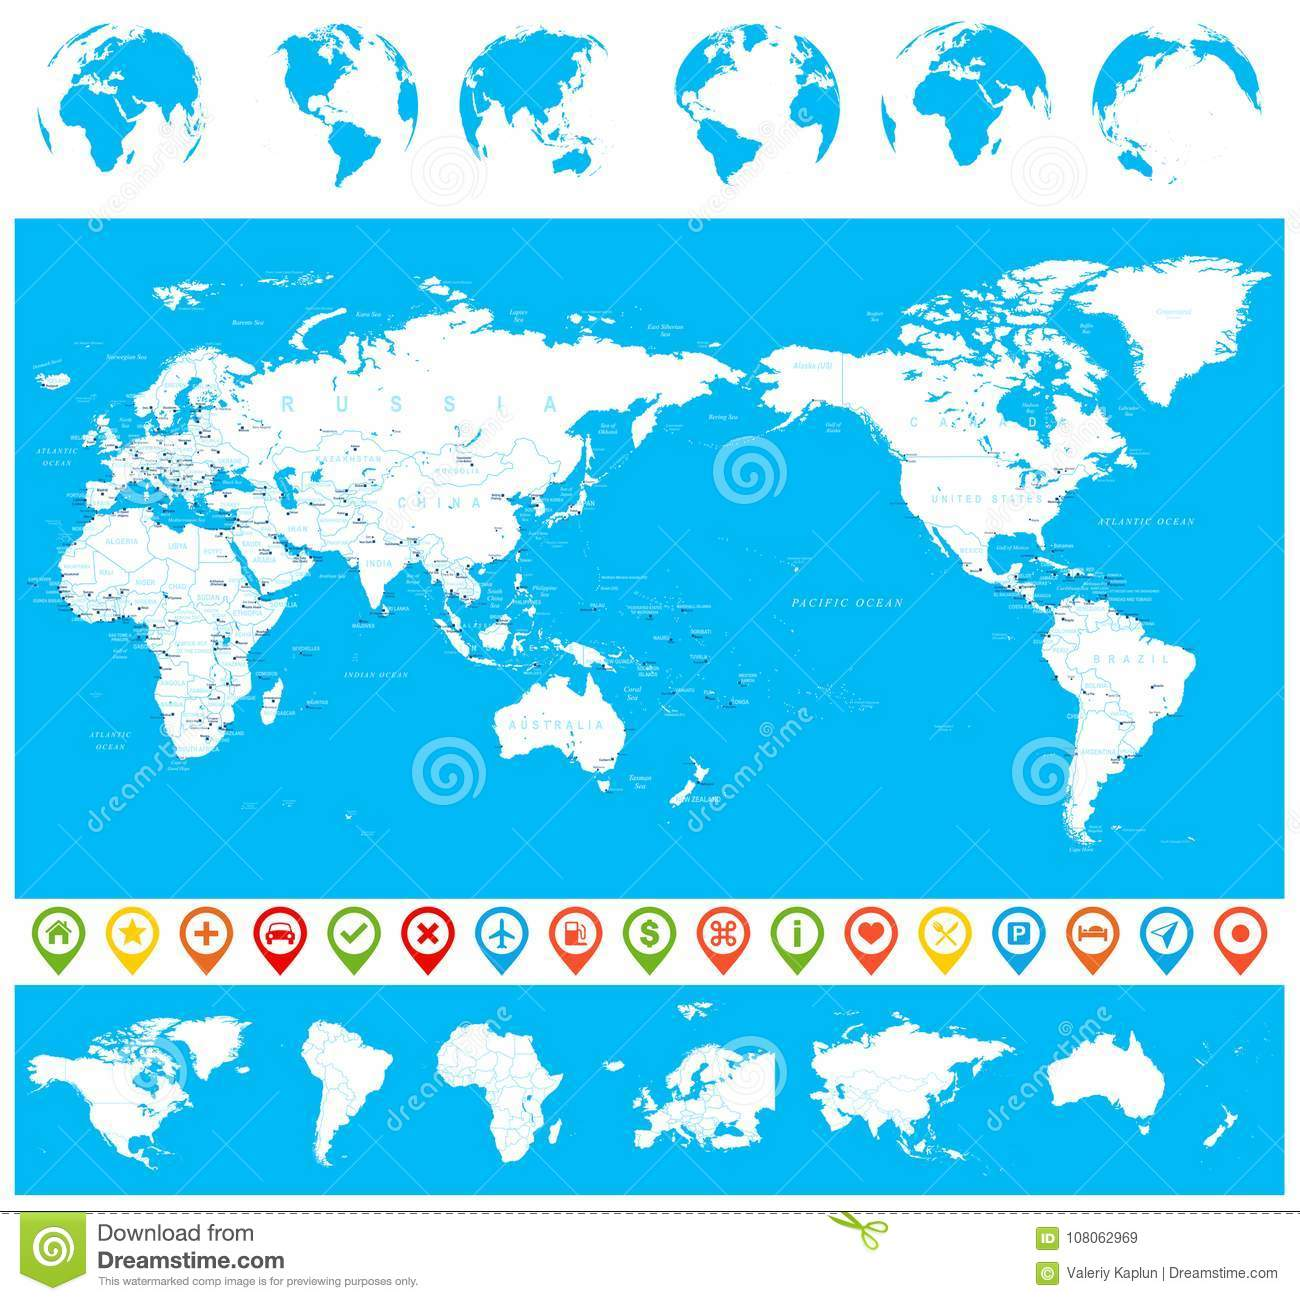 World Map Blue White And Globes - Asia In Center Stock ... on t and o map, maps and tools, raised-relief map, maps and tables, topographic map, maps and directions, maps and travel, maps and compasses, maps and diagrams, maps and books, maps and models, maps and food, maps and scales, maps and water, maps and telescopes, maps and pins, maps and atlases, maps and flags, maps and graphs, maps and charts, world map, maps and calendars, maps and prints, maps and gps,